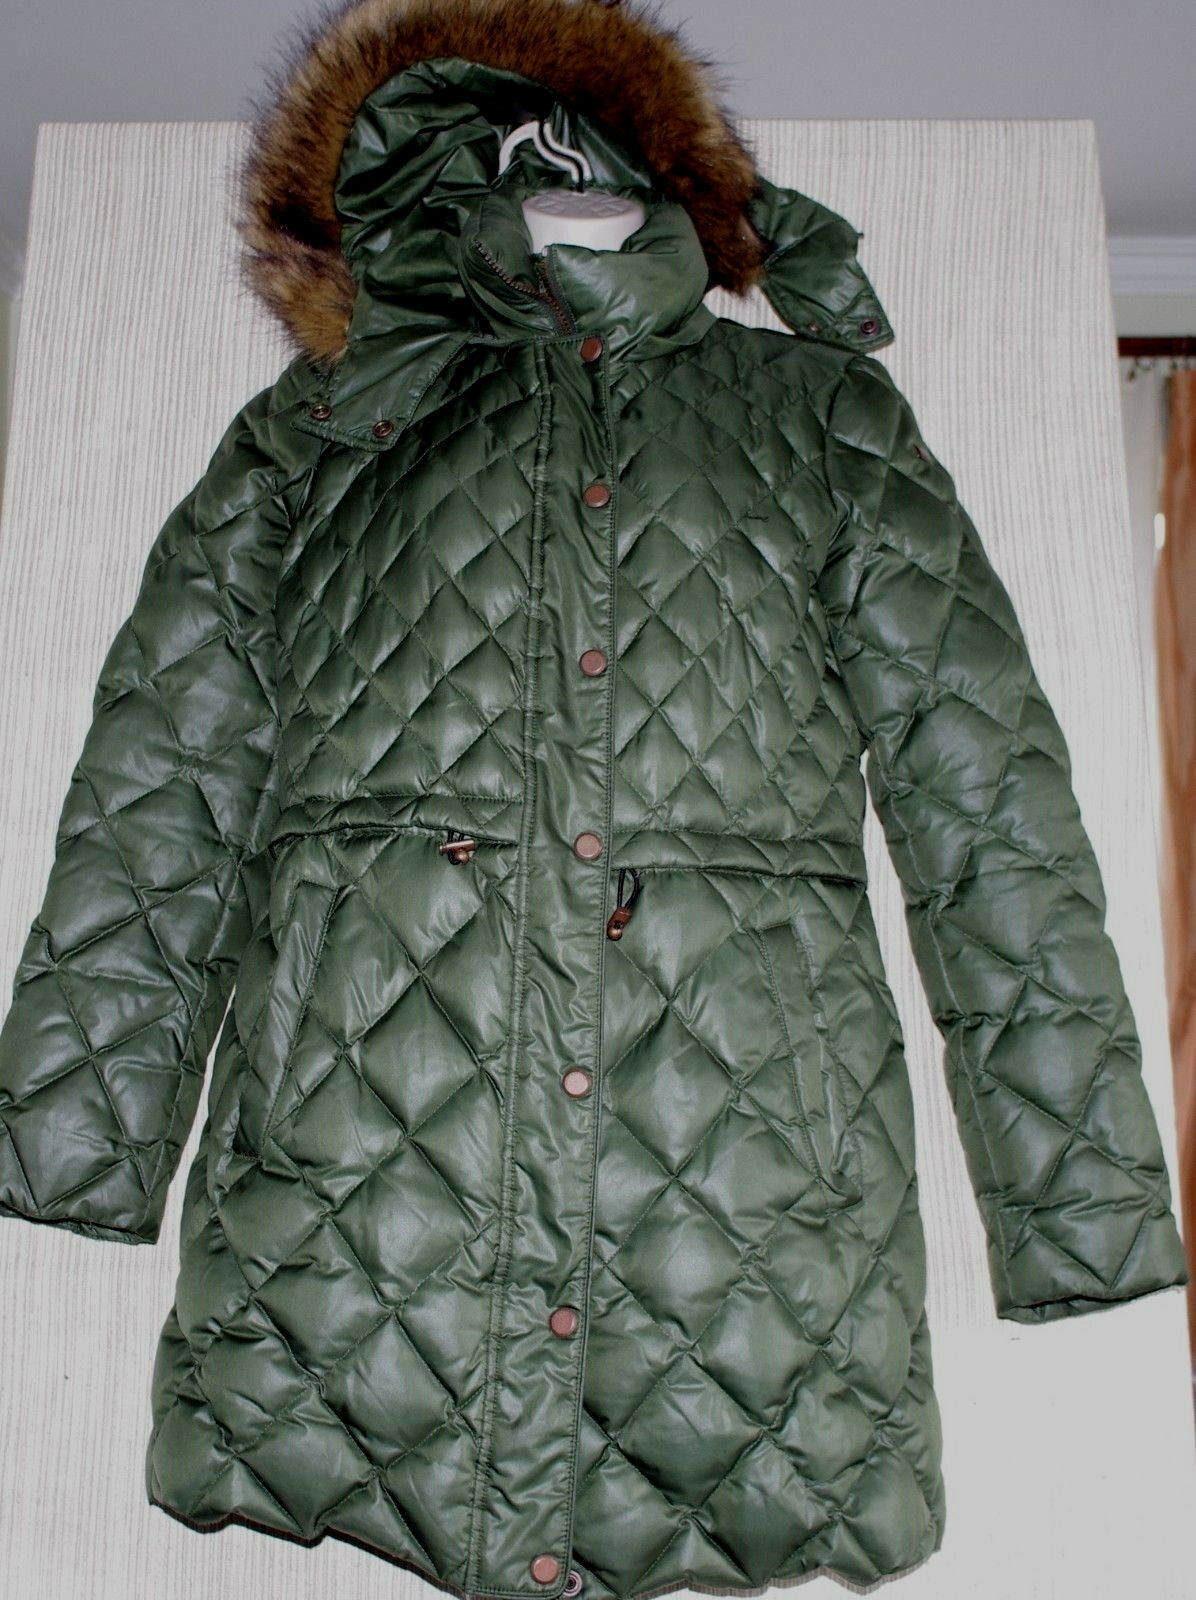 Marc New York Andrew Marc Green Quilted Puffer Down Hooded Coat Women Size M